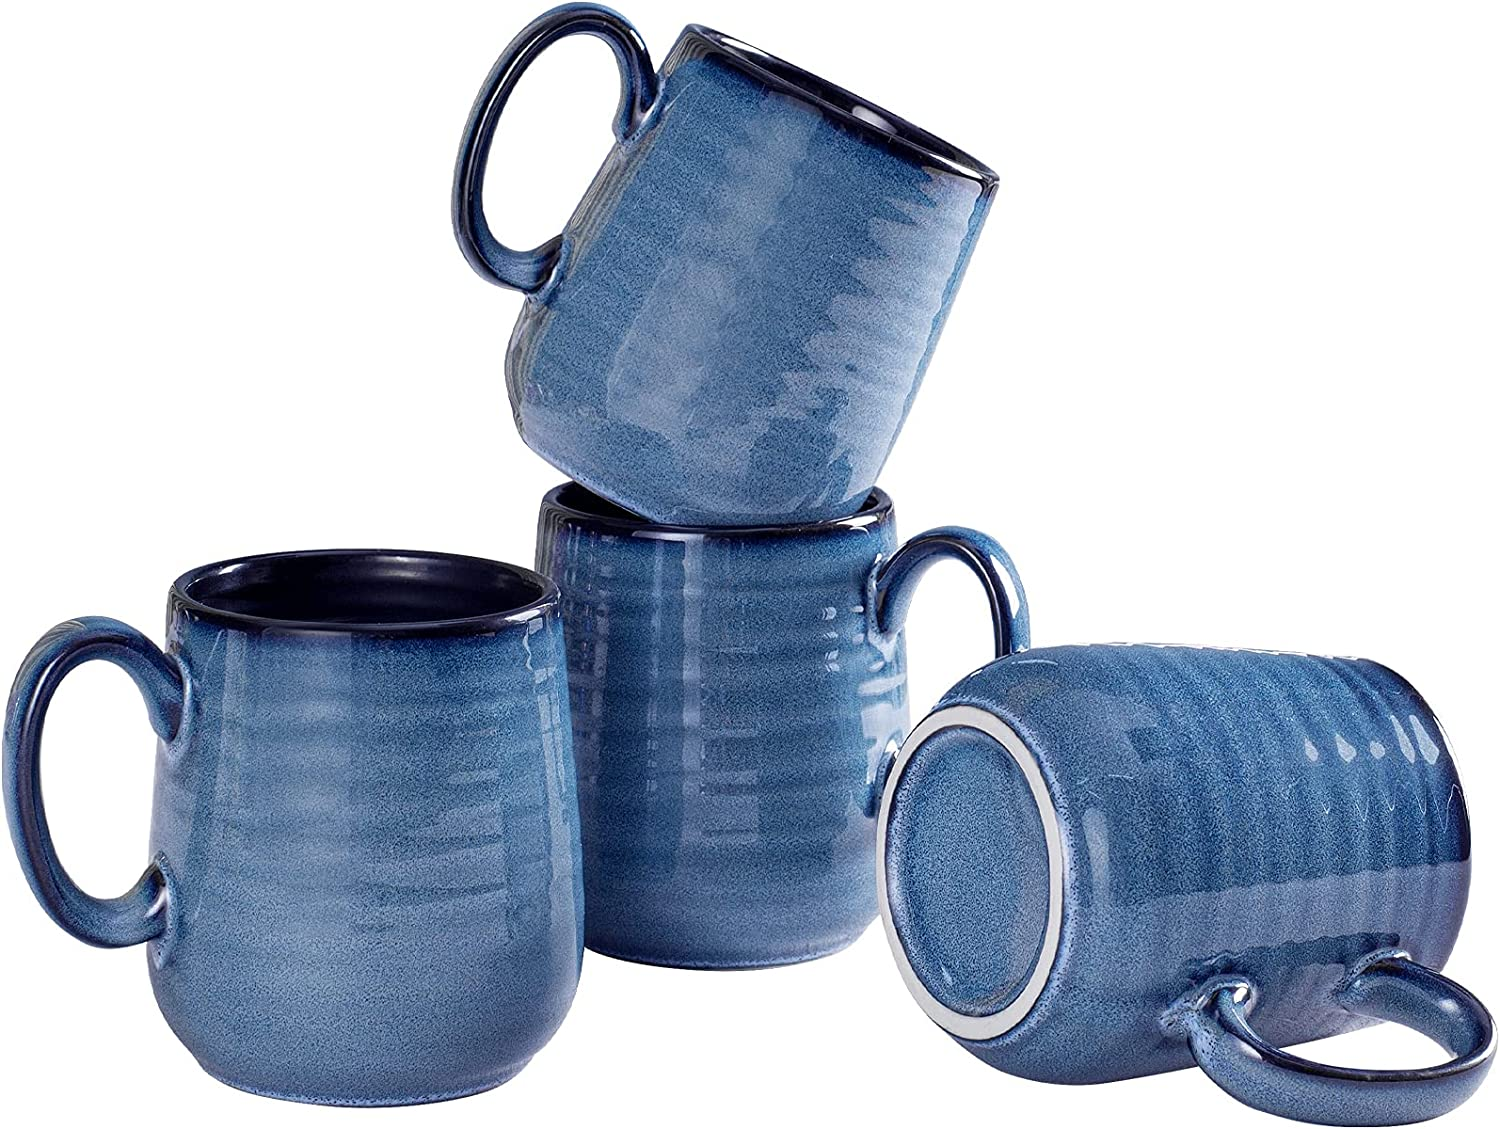 Max 60% OFF Hasense Ceramic Coffee Mug Set of Factory outlet 4 Cups 12oz